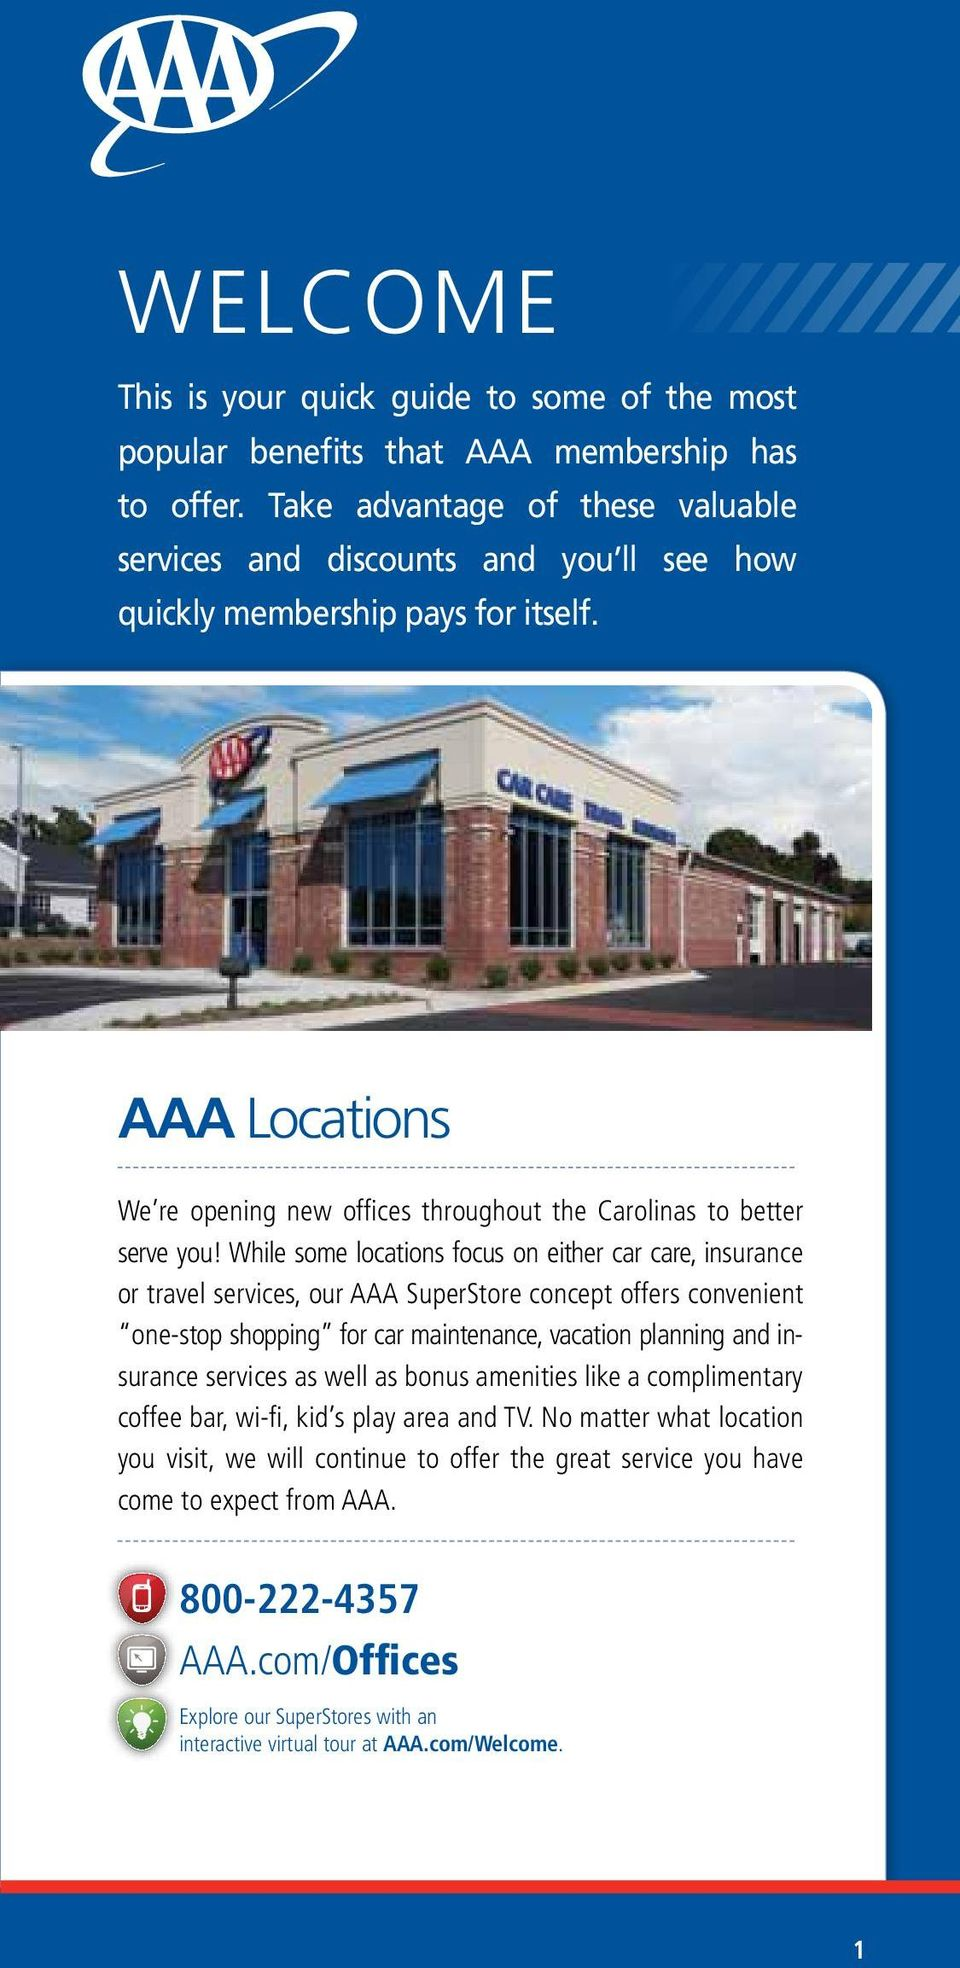 While some locations focus on either car care, insurance or travel services, our AAA SuperStore concept offers convenient one-stop shopping for car maintenance, vacation planning and insurance